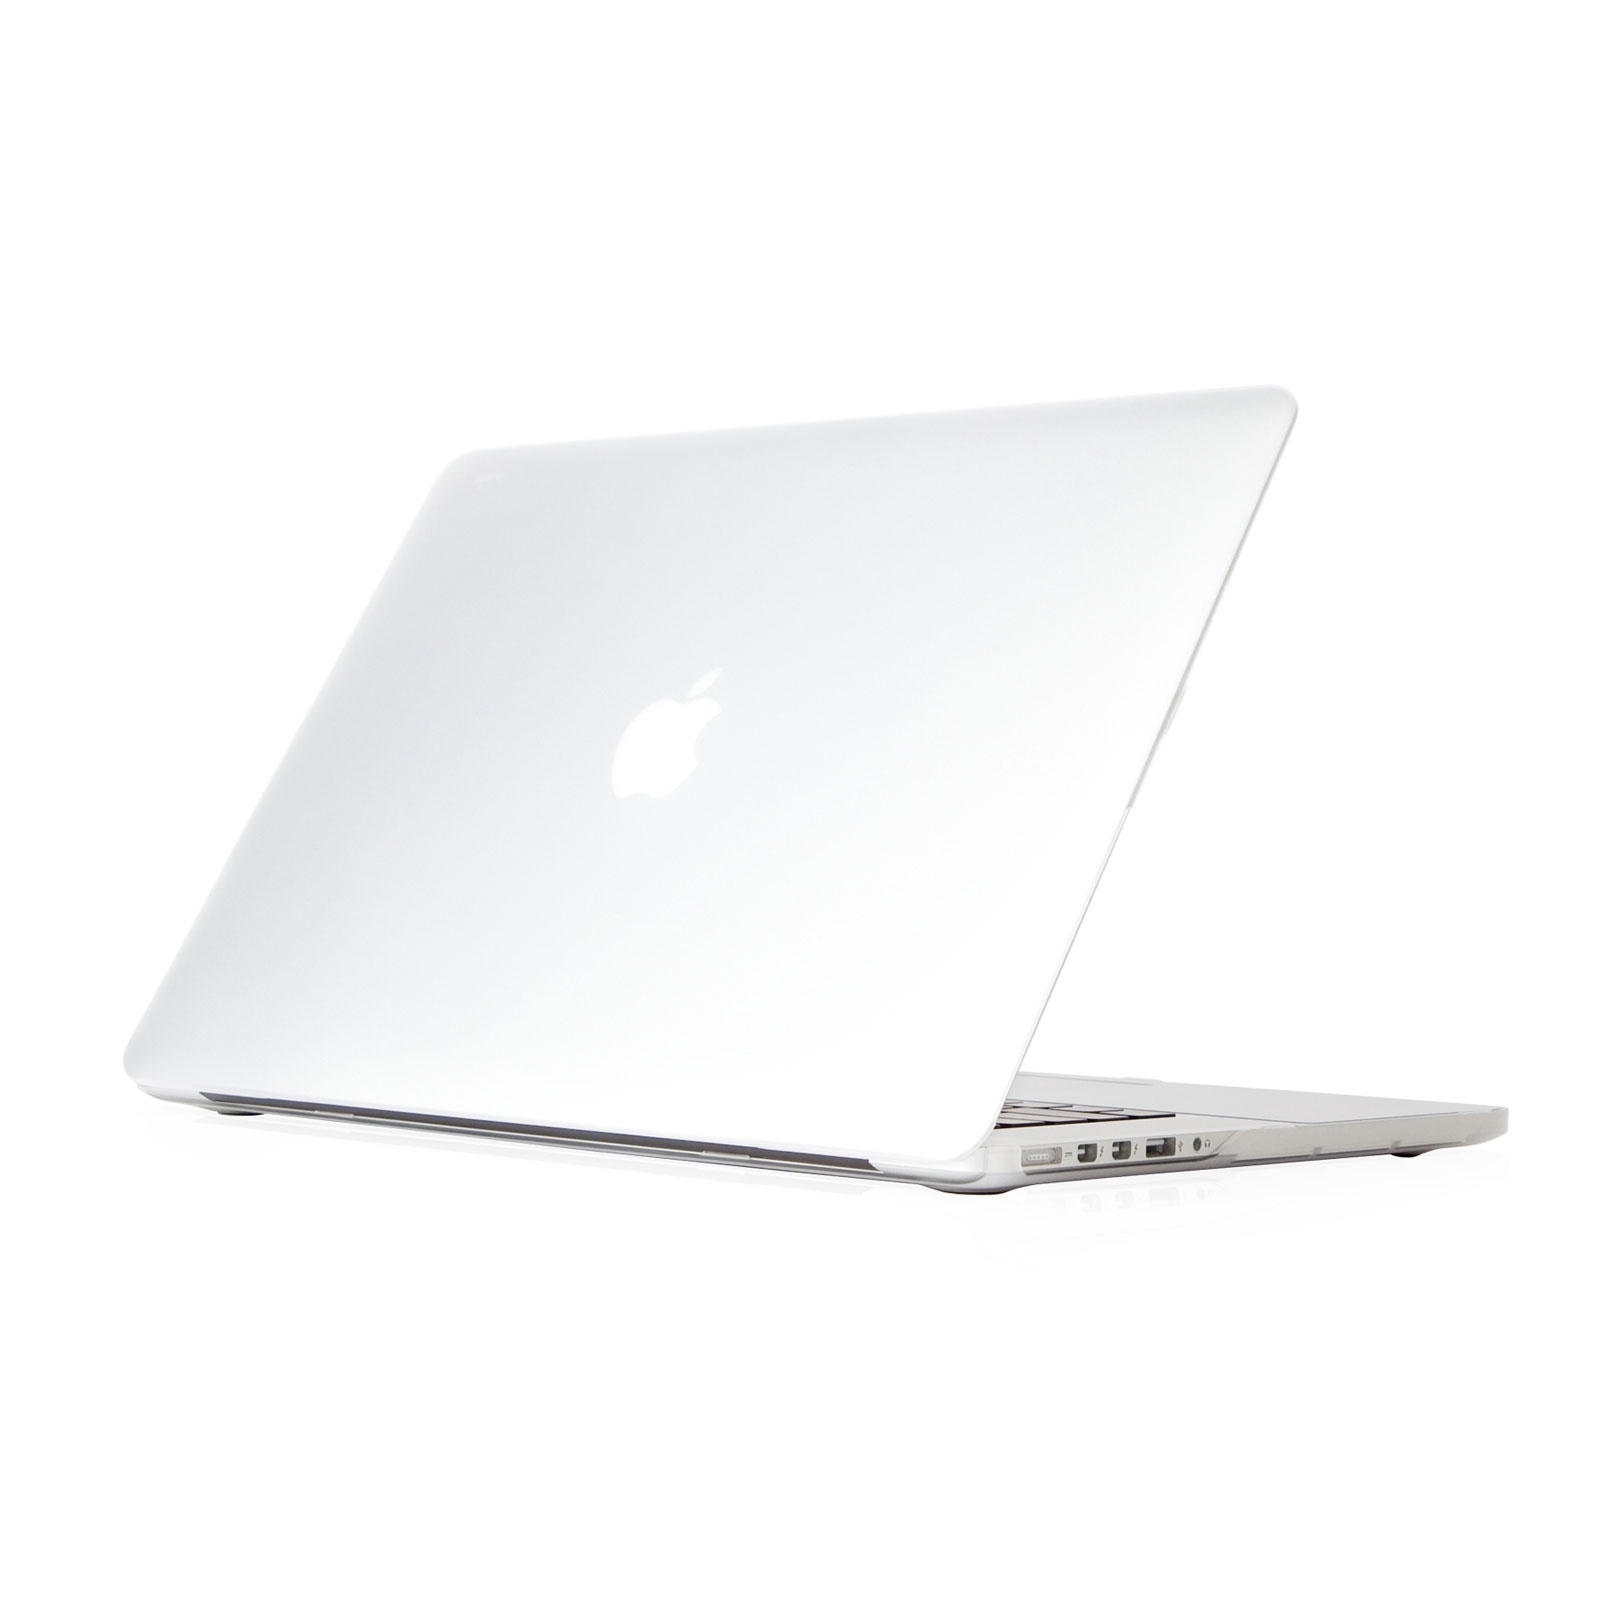 Чехол Moshi для Apple MacBook Pro Retina 15